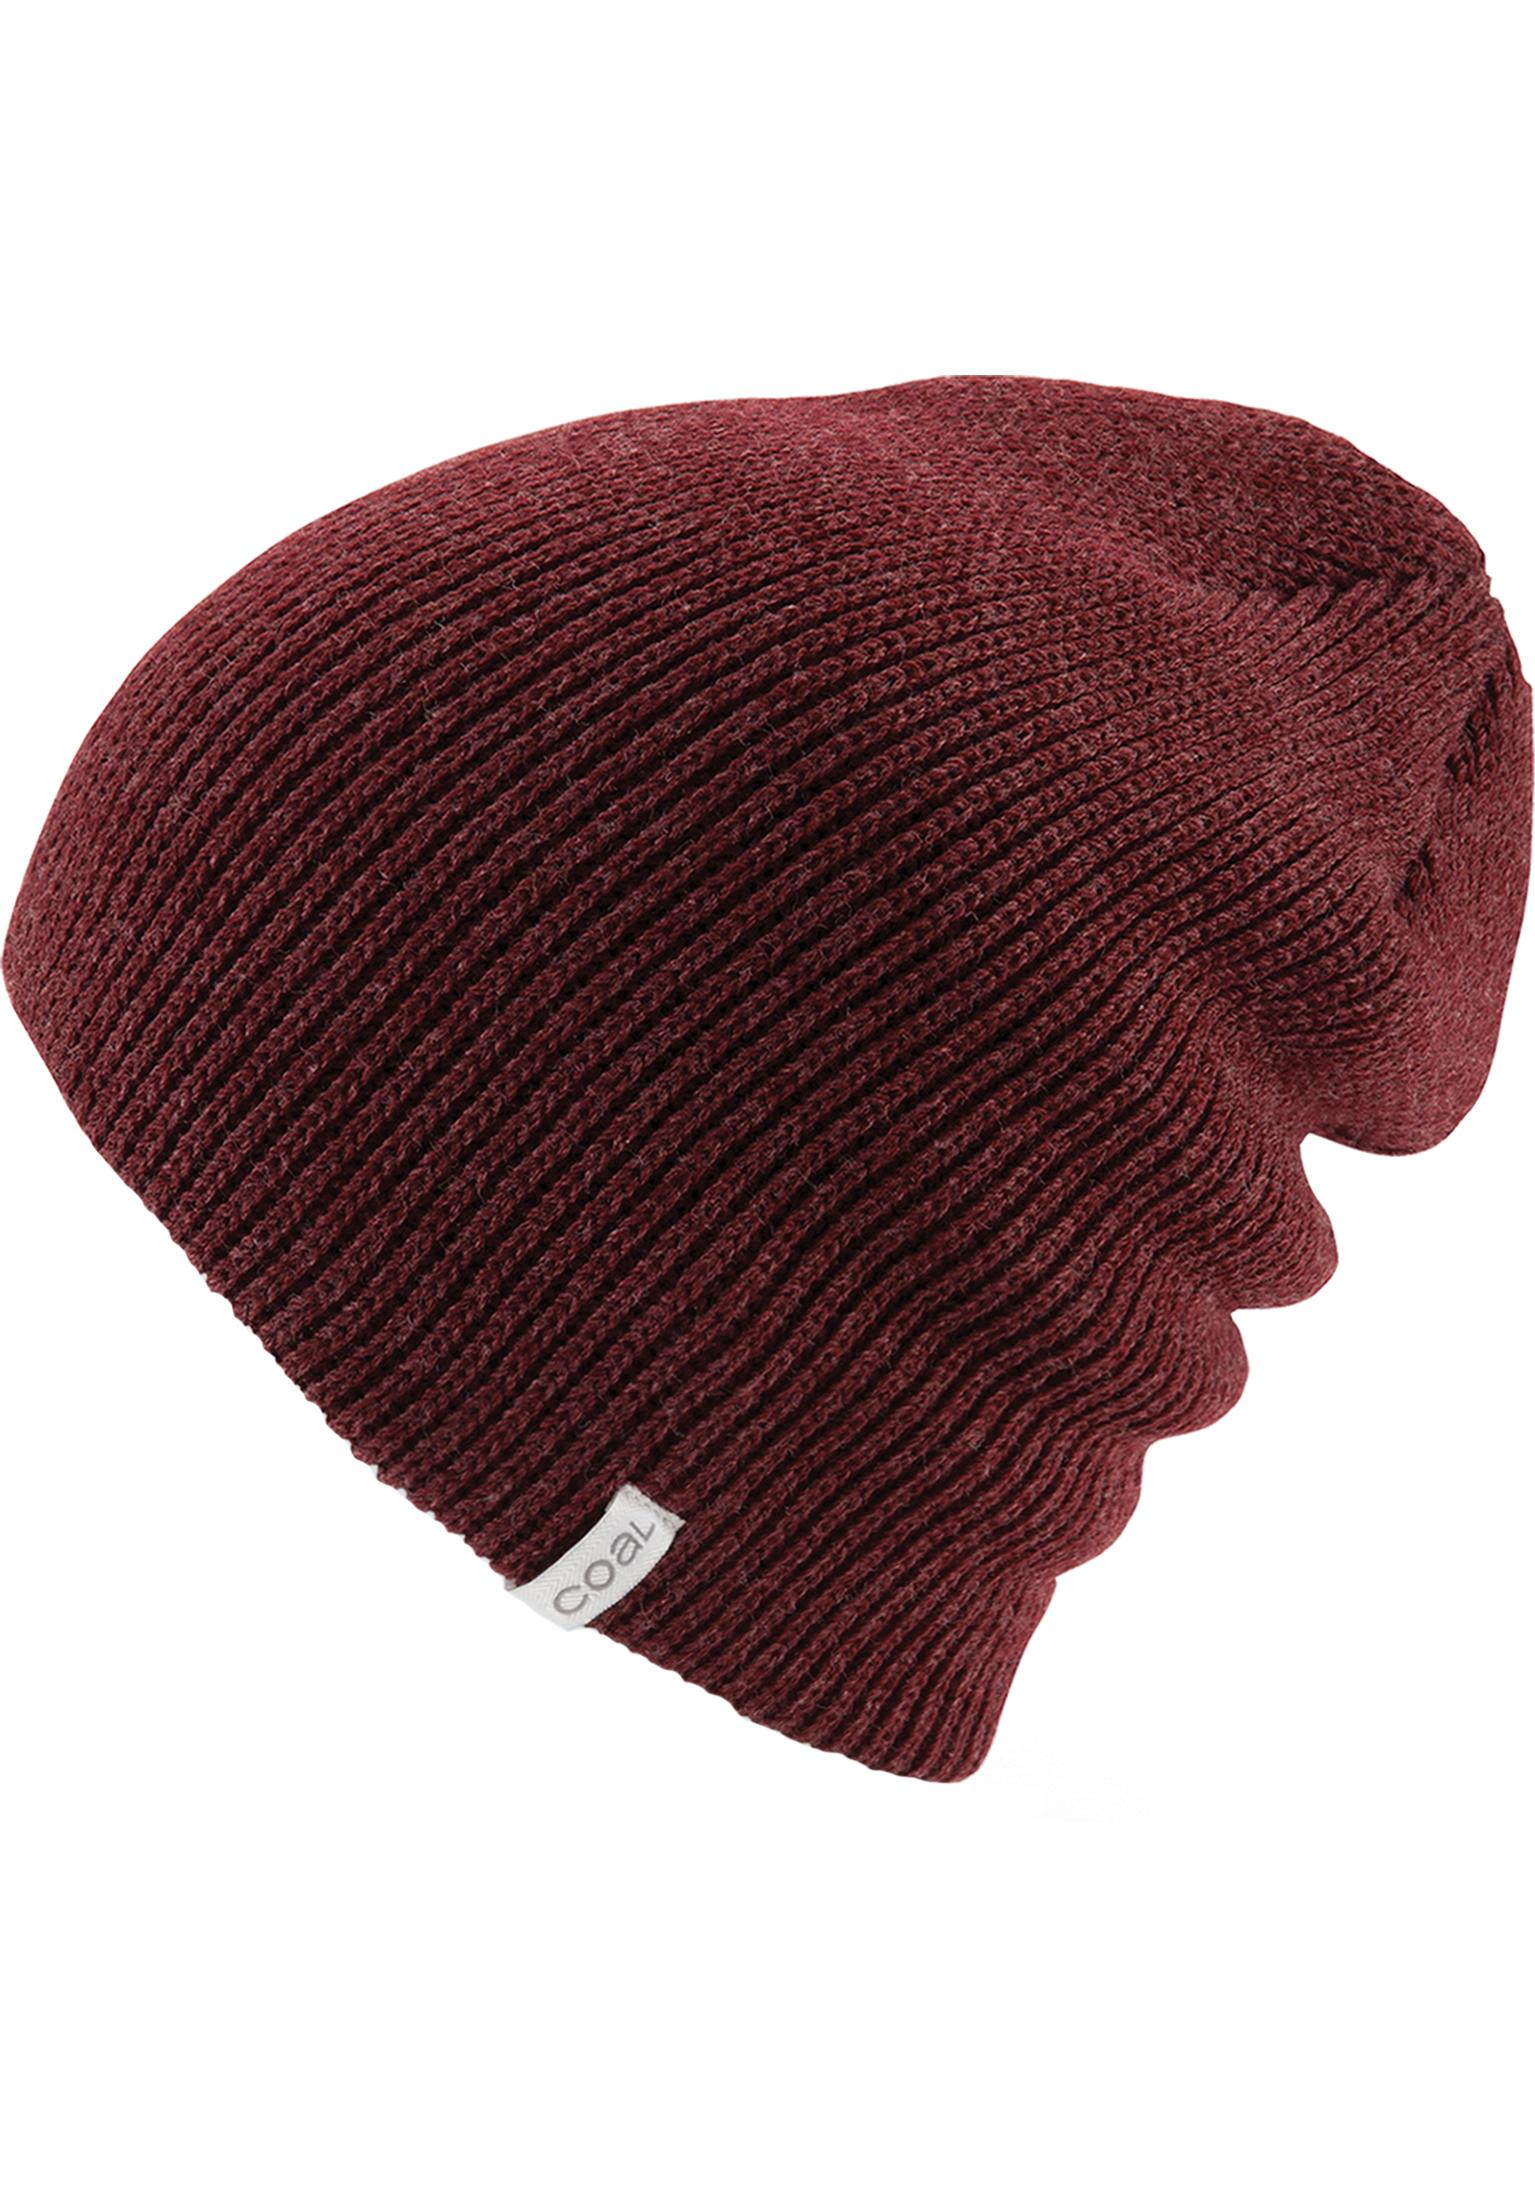 ada9628f9bd The Frena coal Beanies in heatherburgundy for Men